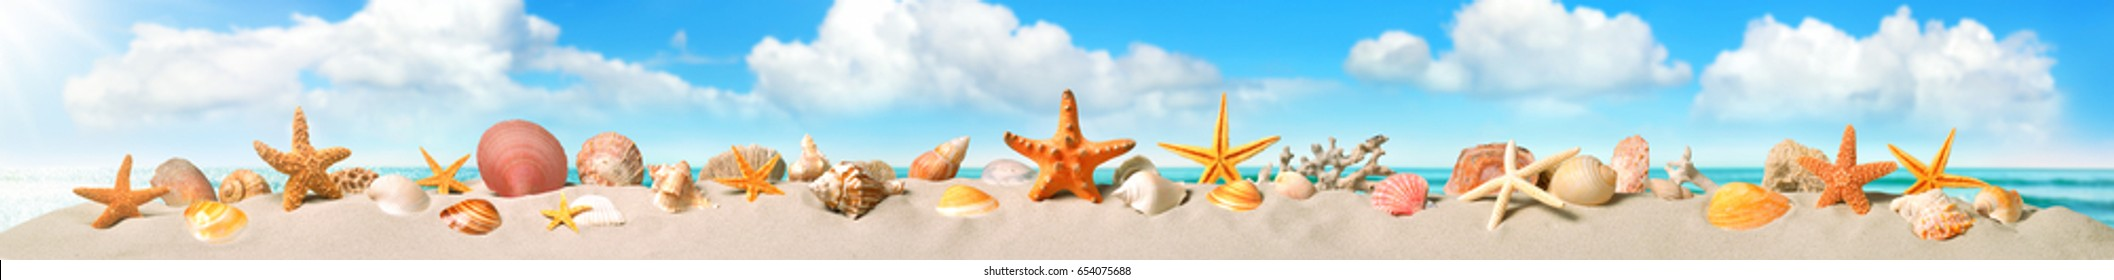 Seashells and starfish smartly arranged in a long row on the sandy beach, nice sky background, panoramic banner format